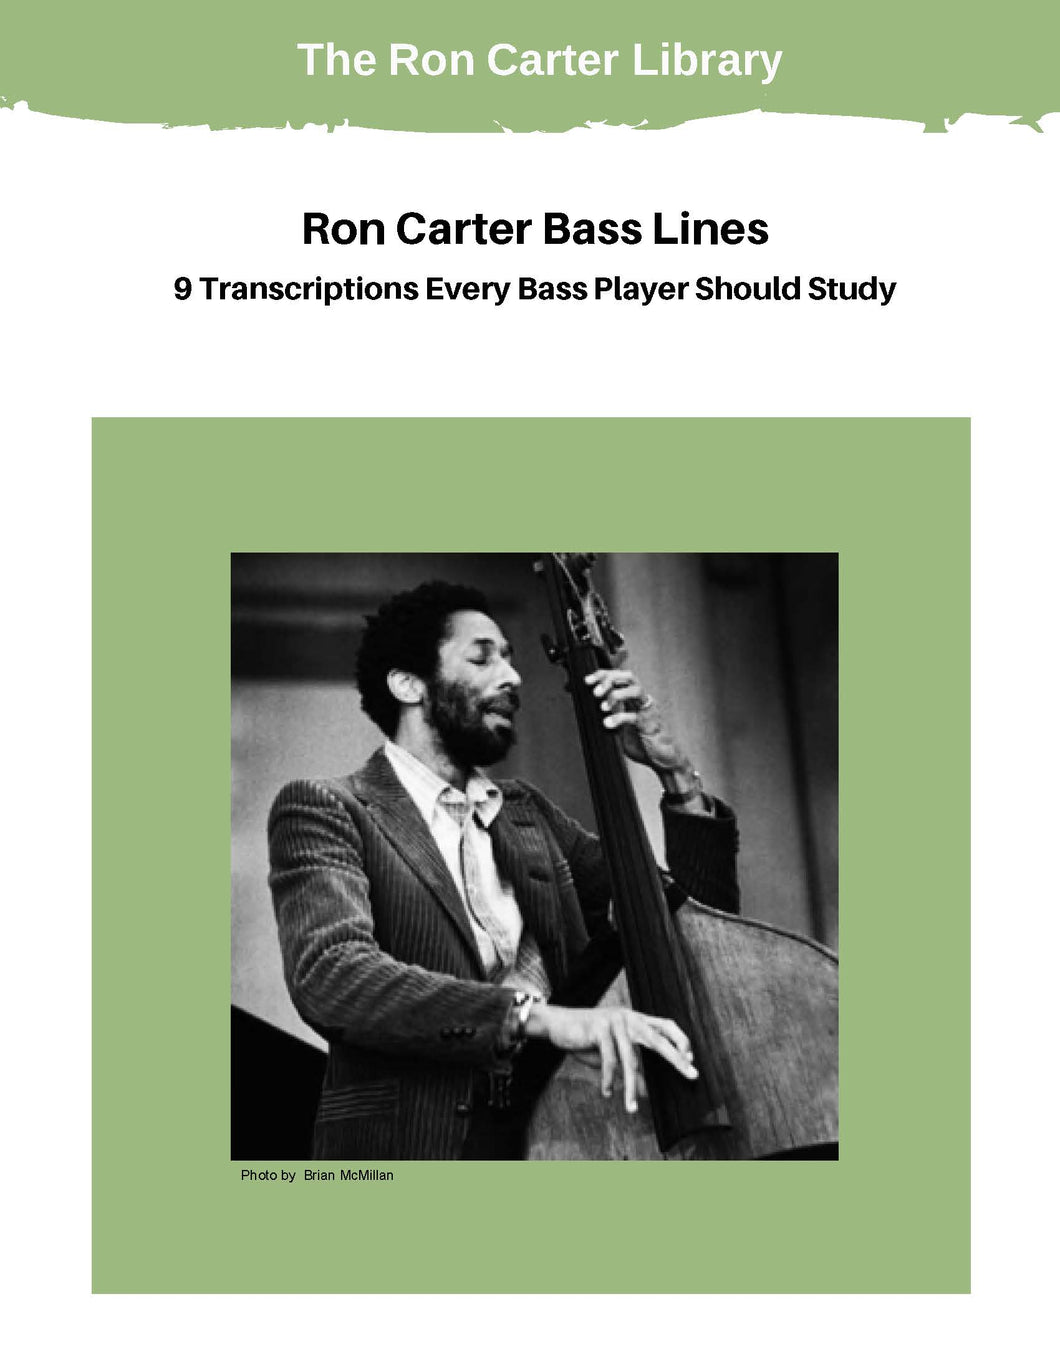 9 Ron Carter Bass Line Transcriptions